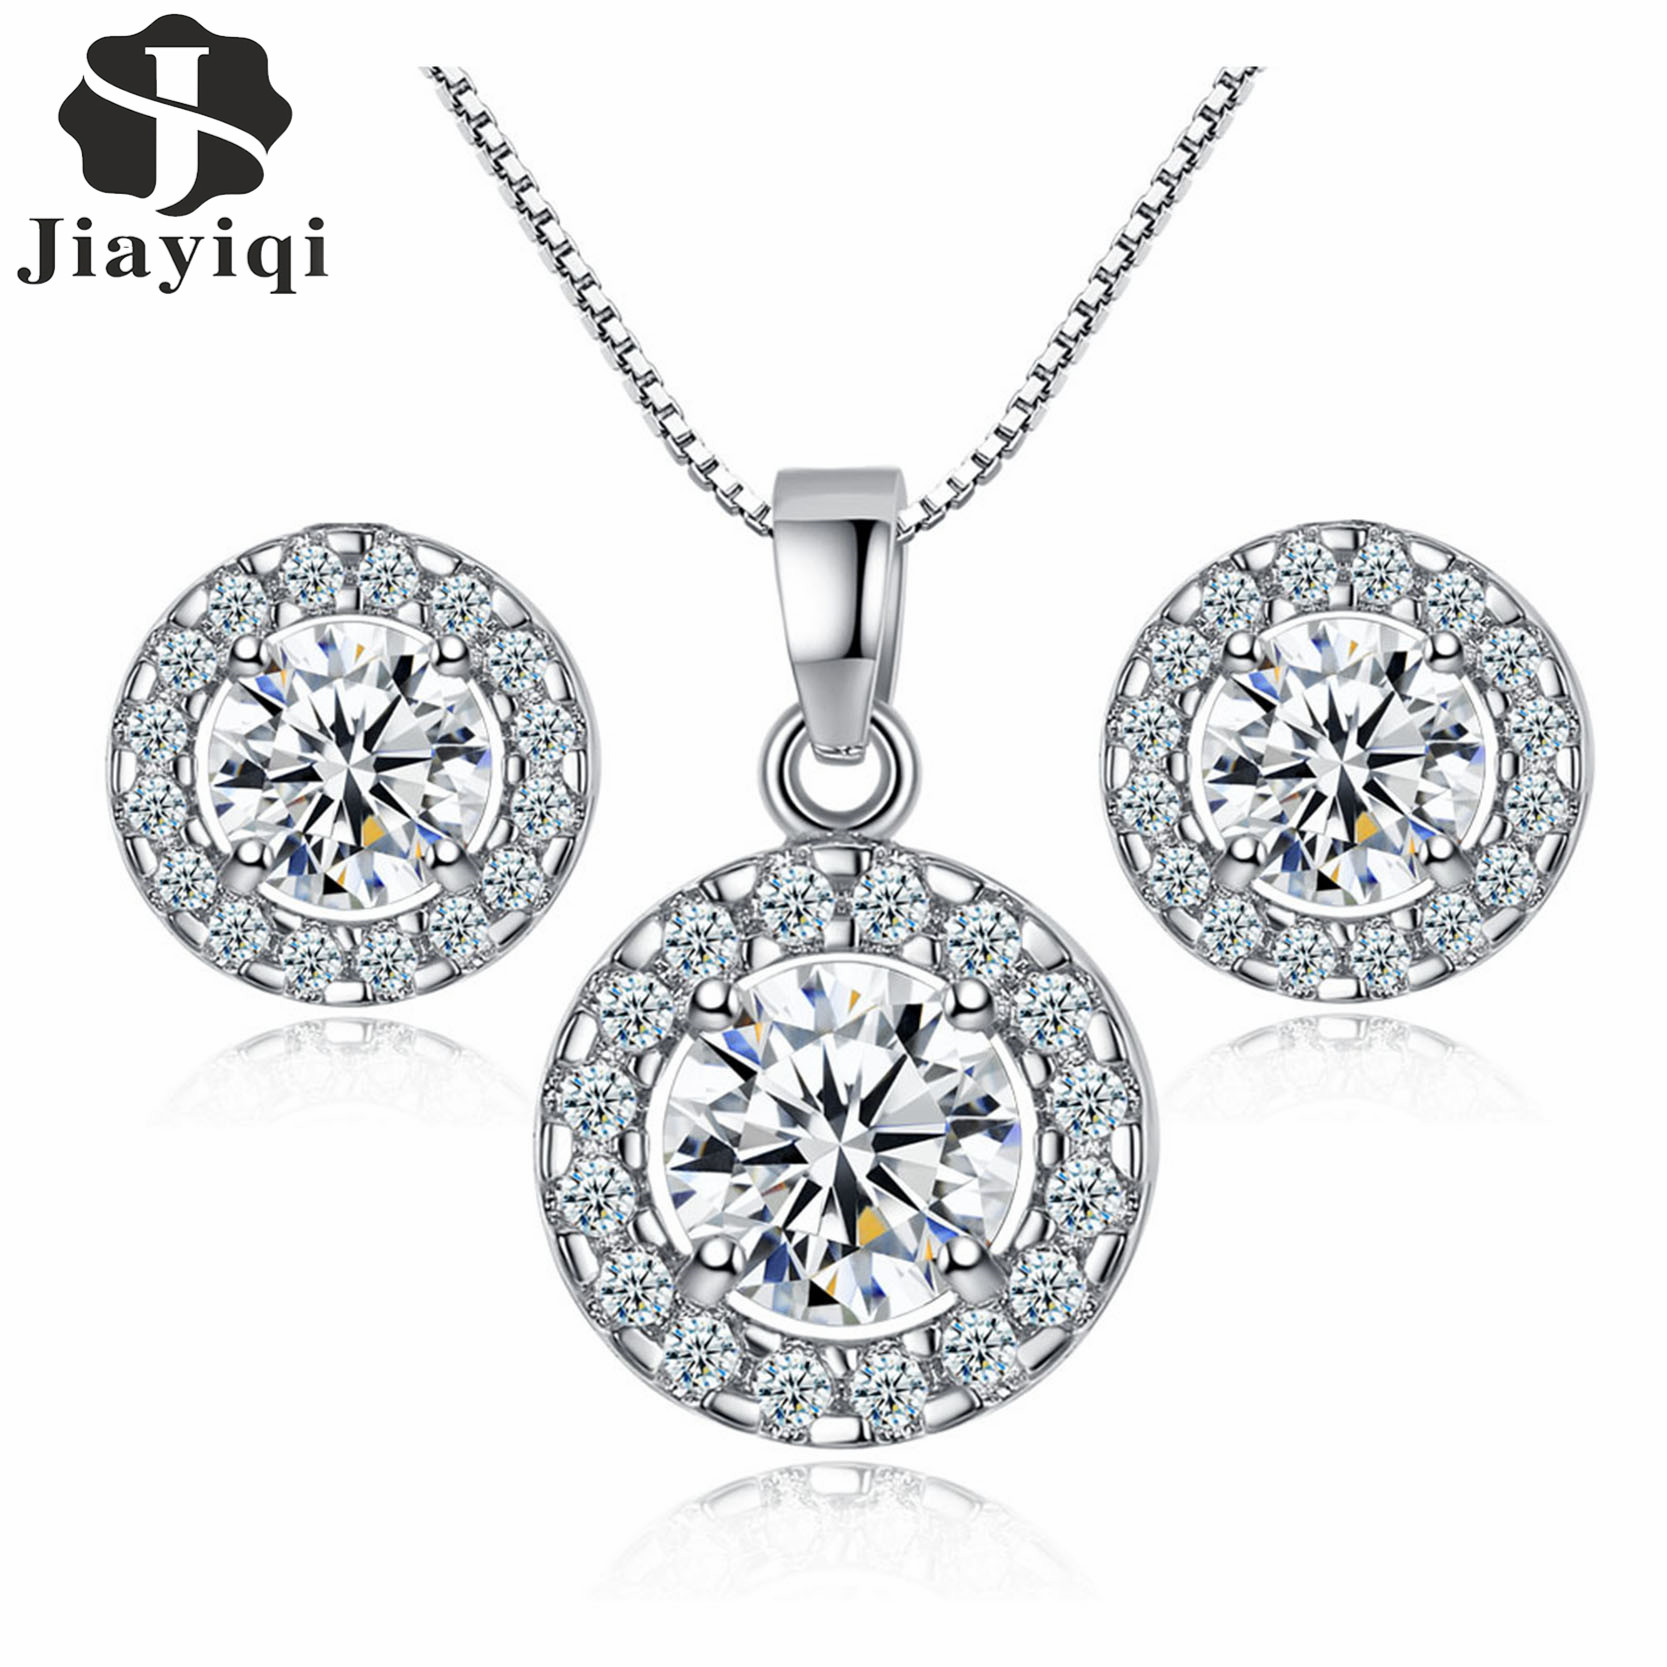 Jiayiqi Hot 2018 Cubic Zirconia Jewelry Set for Women Silver Color Round Style Pendant Necklace/Earrings Sets Valentine's Gift